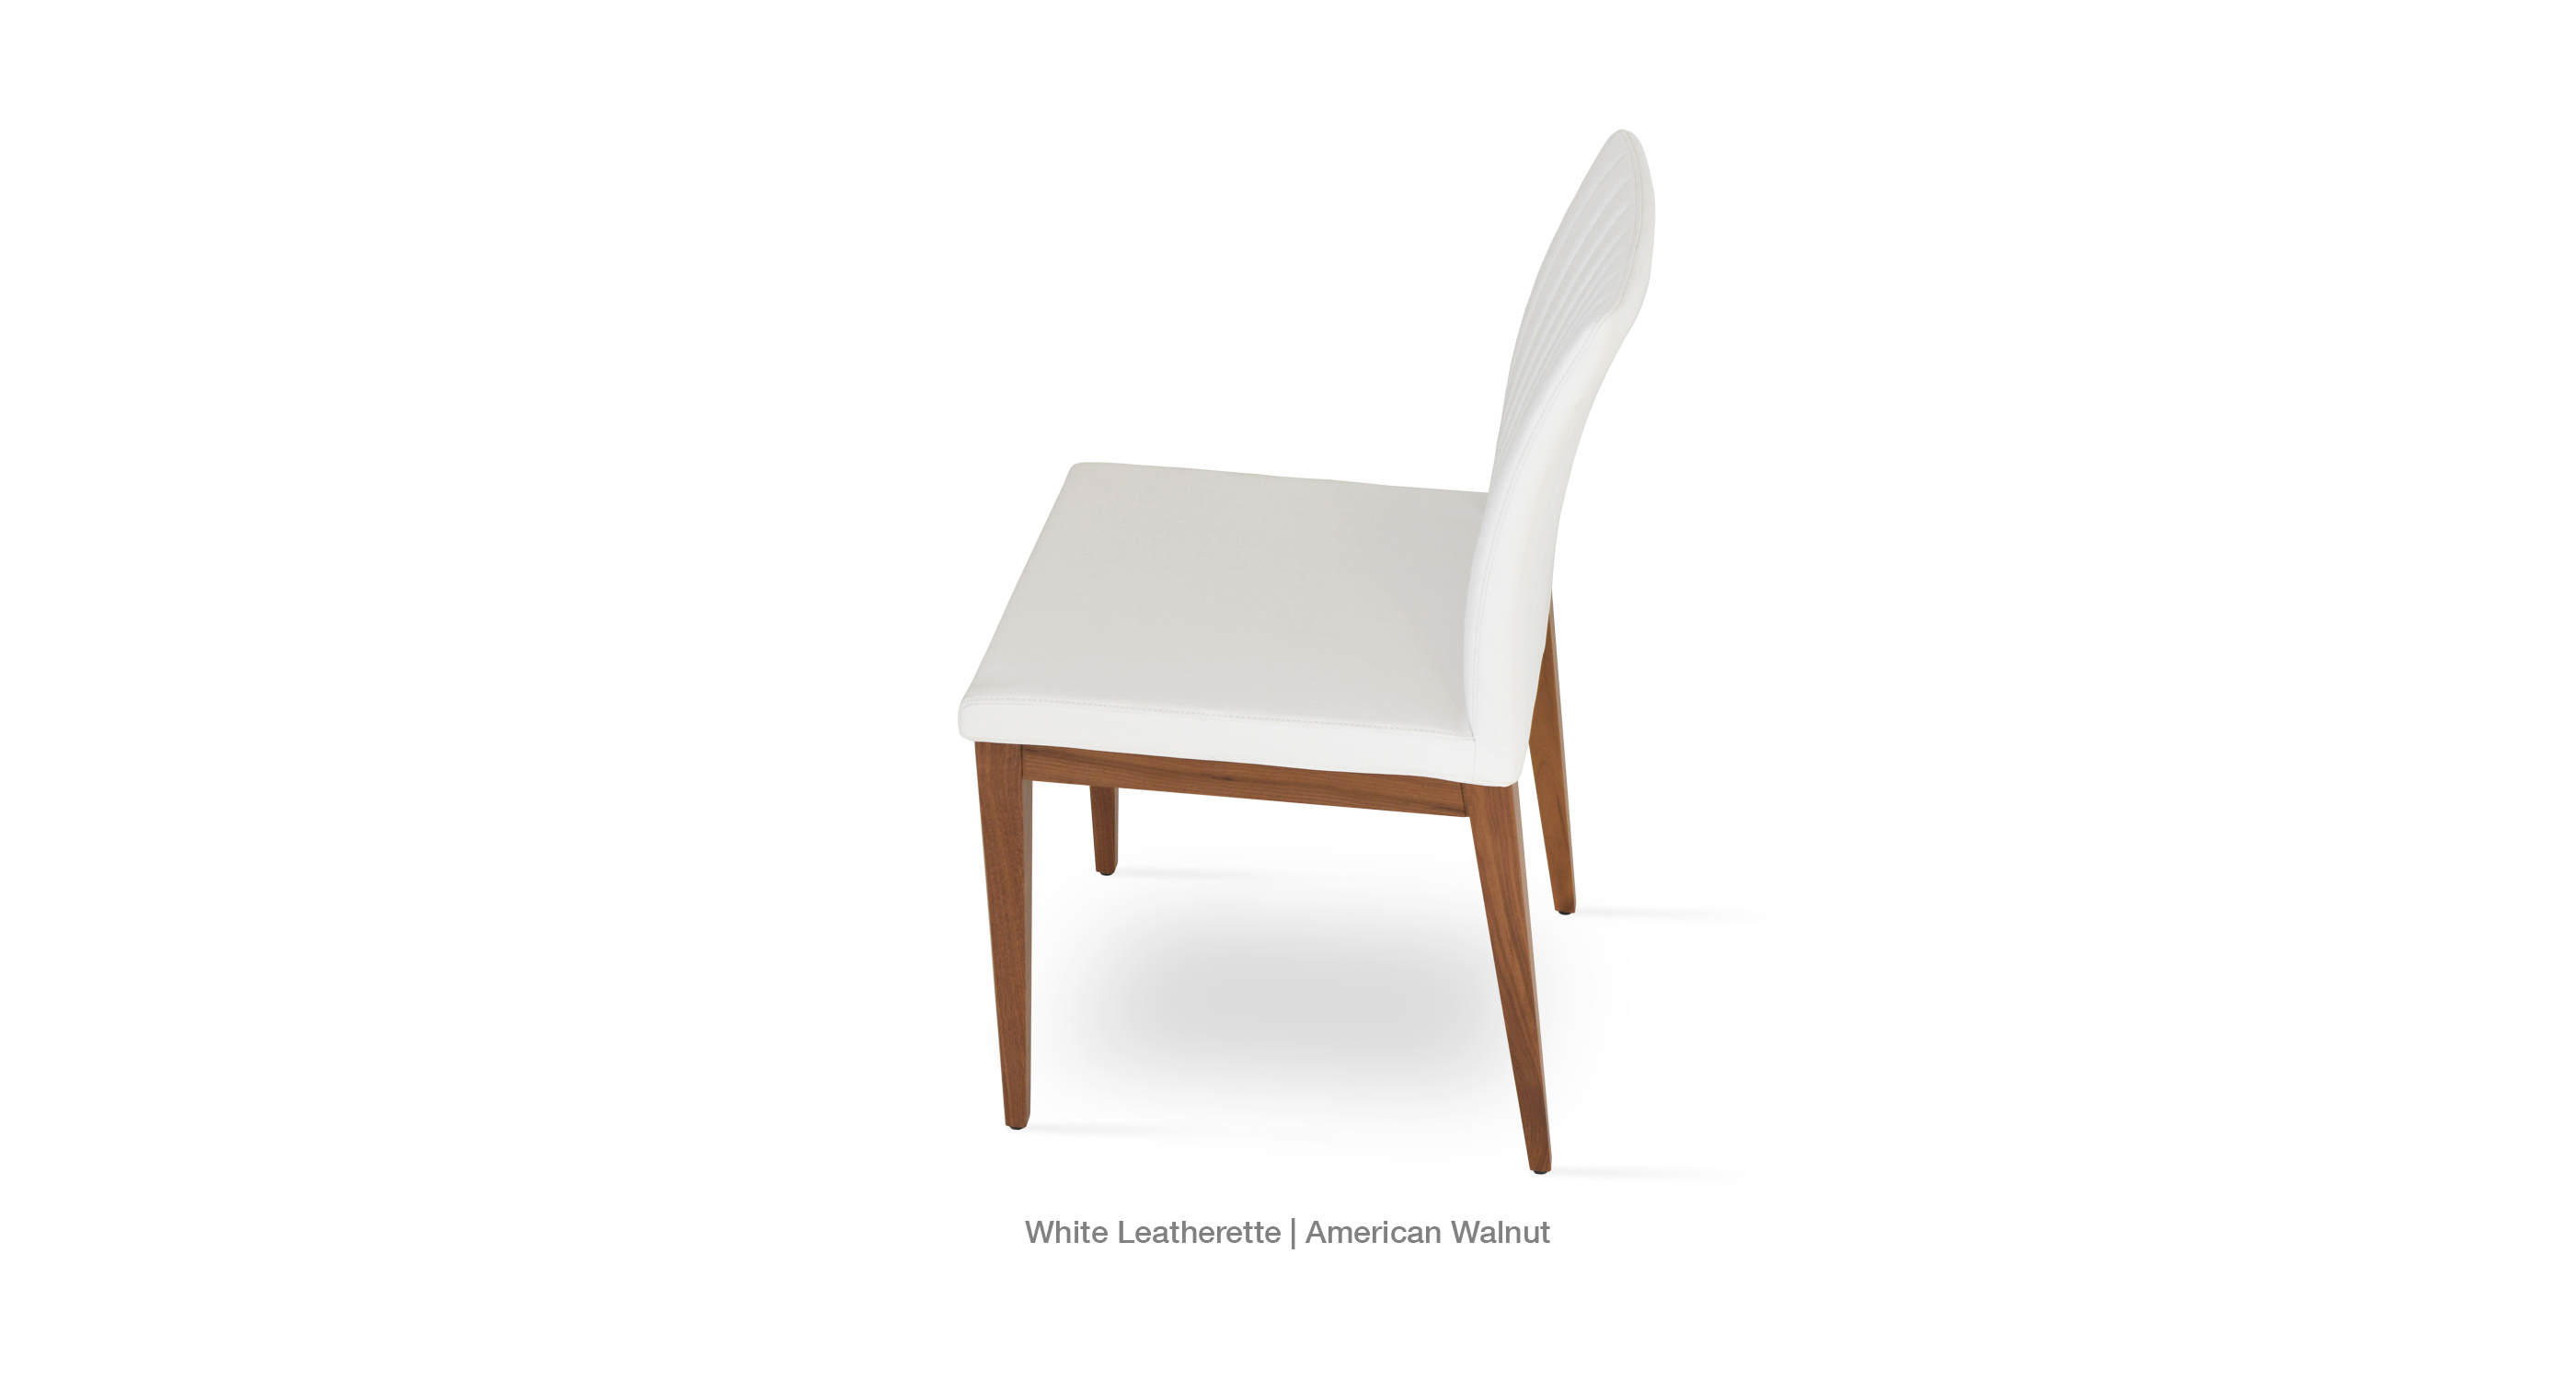 Zeyno wood white leatherette